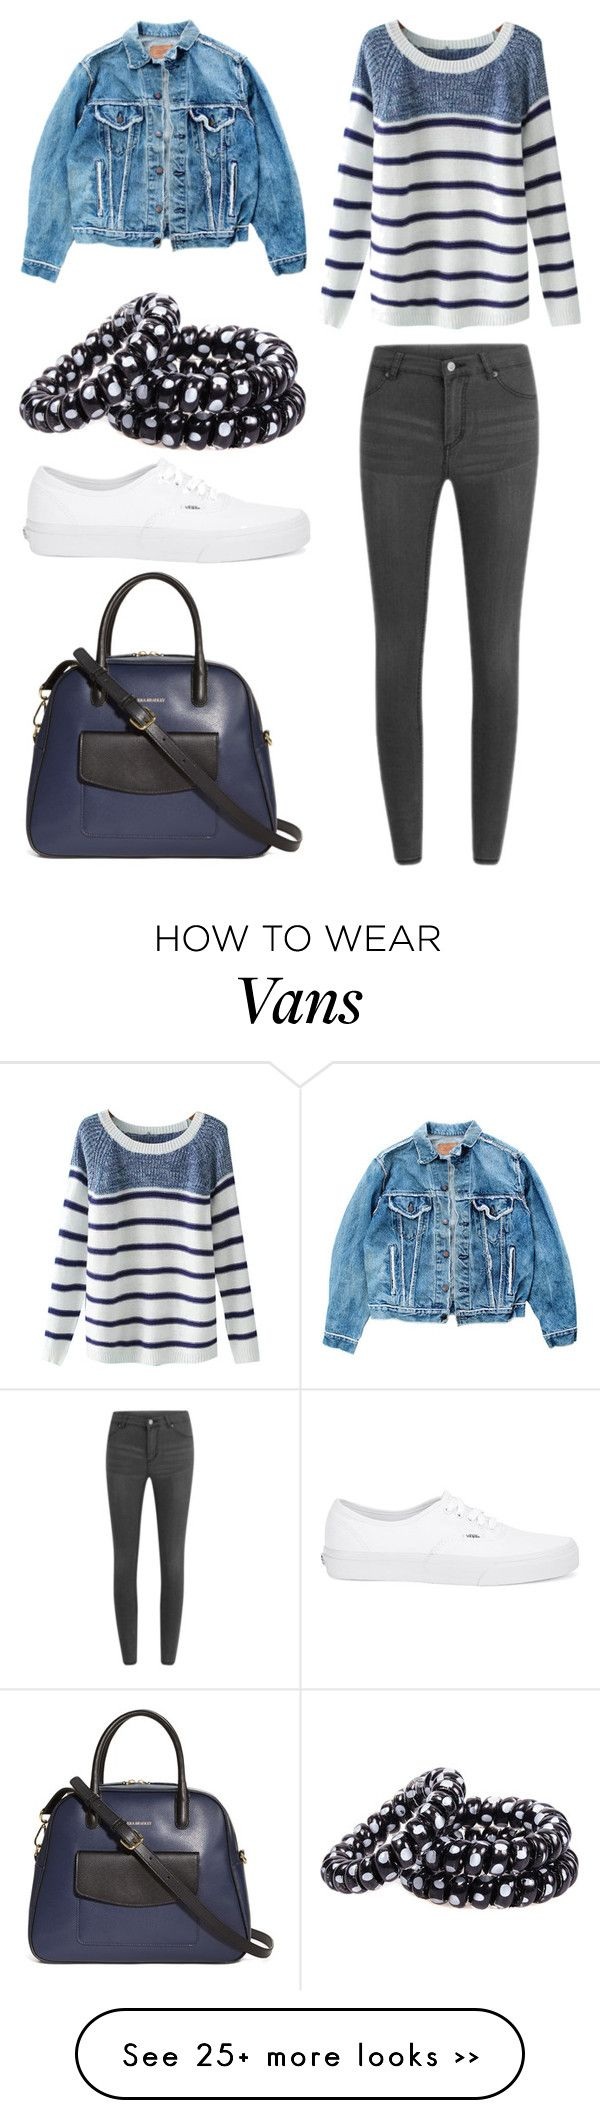 """""""Untitled #11675"""" by aavagian on Polyvore featuring Levi's, Chicnova Fashion, Cheap Monday, Vans and Vera Bradley"""